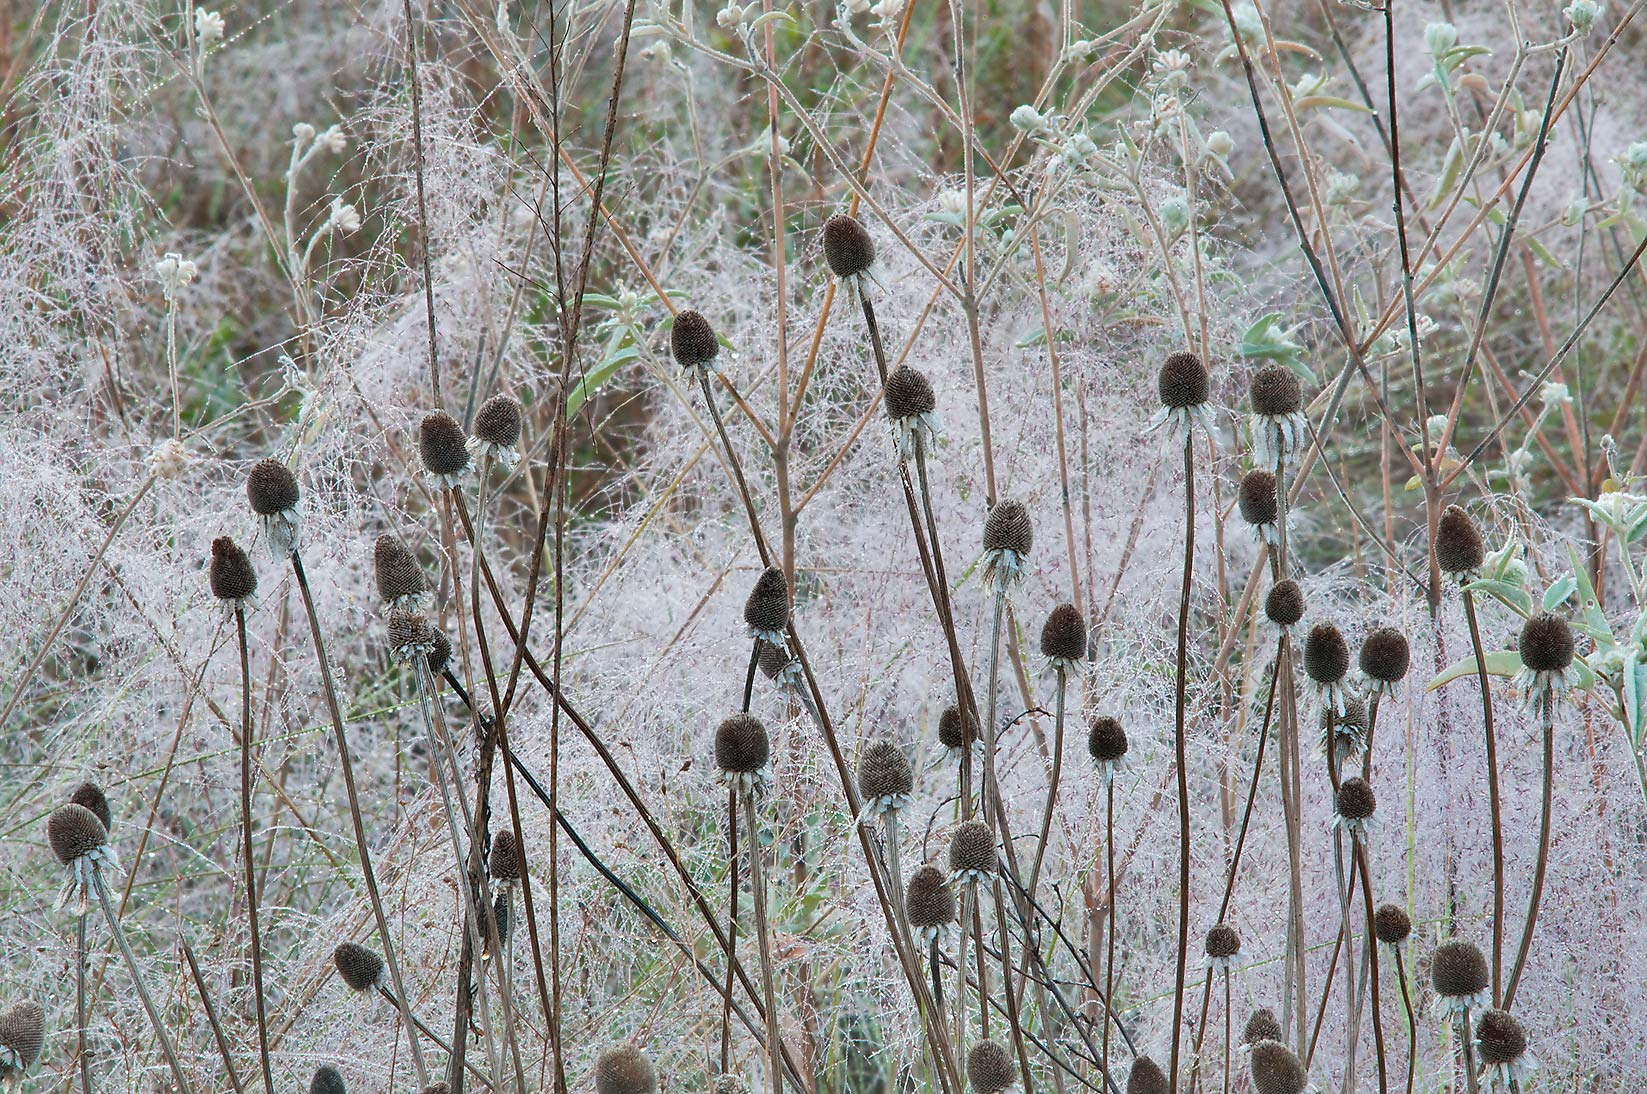 Dry seed heads of Black eyed susan (Rudbeckia...Creek Park. College Station, Texas